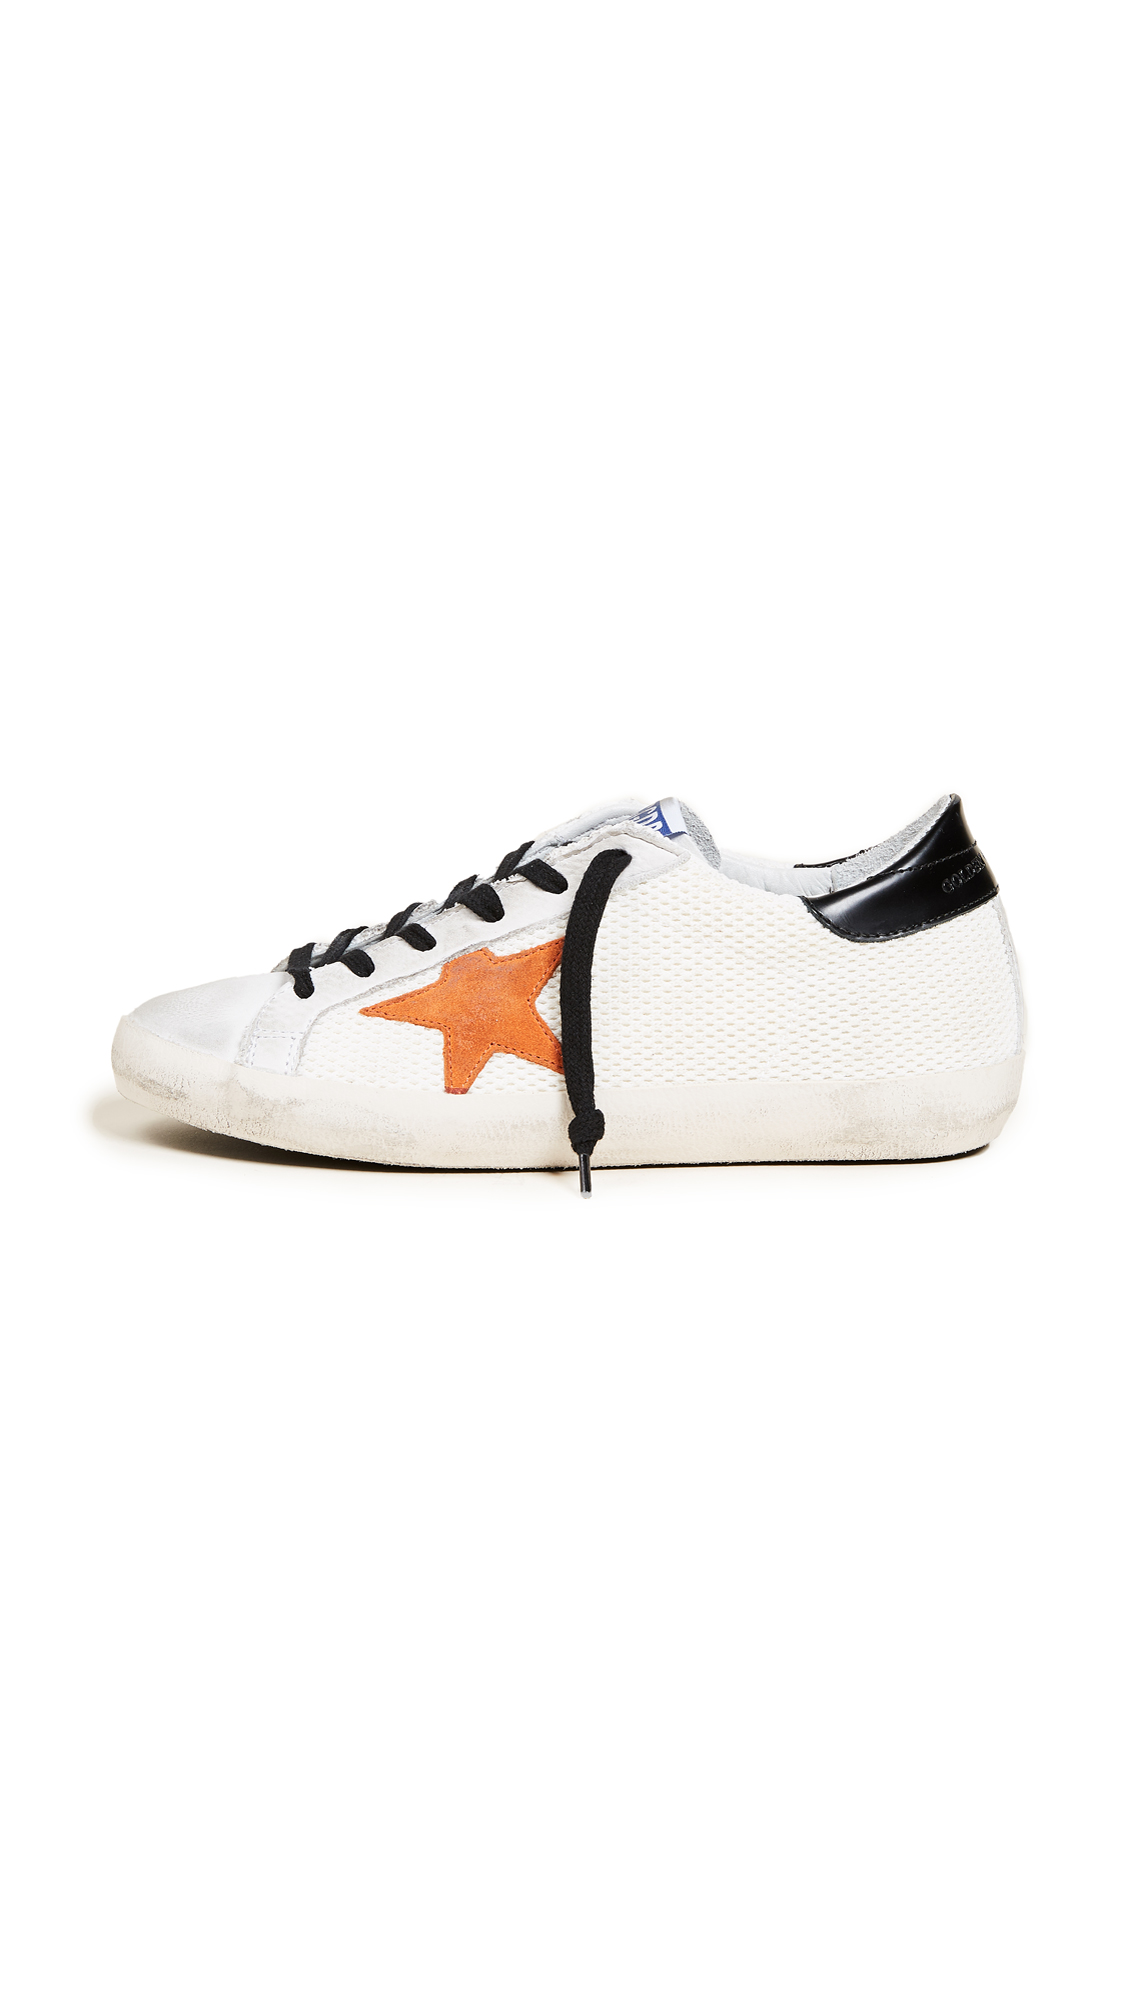 Golden Goose Superstar Sneakers - White/Orange